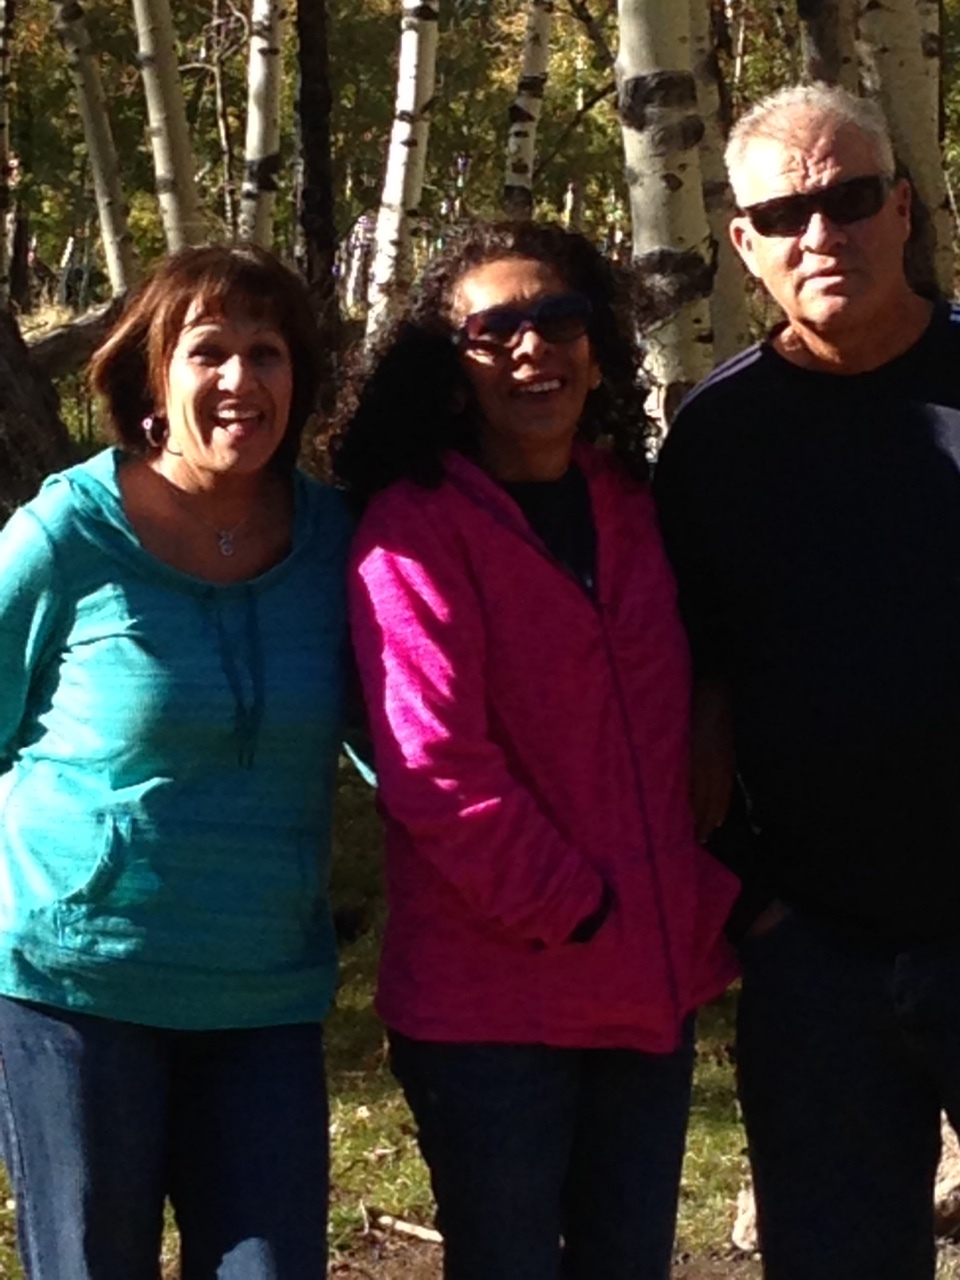 "William Contreras' fiancé Janet with his sister Roseann Atherton and Roseann's husband David Atherton. Roseann and David are both avid hunters, campers and anglers. They camp every weekend.     Normal   0           false   false   false     EN-US   X-NONE   X-NONE                                                                                                                                                                                                                                                                                                                                                                                                                                                                                                                                                                                                                                                                                                                                                                                                                                                        /* Style Definitions */  table.MsoNormalTable 	{mso-style-name:""Table Normal""; 	mso-tstyle-rowband-size:0; 	mso-tstyle-colband-size:0; 	mso-style-noshow:yes; 	mso-style-priority:99; 	mso-style-parent:""""; 	mso-padding-alt:0in 5.4pt 0in 5.4pt; 	mso-para-margin:0in; 	mso-para-margin-bottom:.0001pt; 	mso-pagination:widow-orphan; 	font-size:11.0pt; 	font-family:""Calibri"",sans-serif; 	mso-ascii-font-family:Calibri; 	mso-ascii-theme-font:minor-latin; 	mso-hansi-font-family:Calibri; 	mso-hansi-theme-font:minor-latin;}"